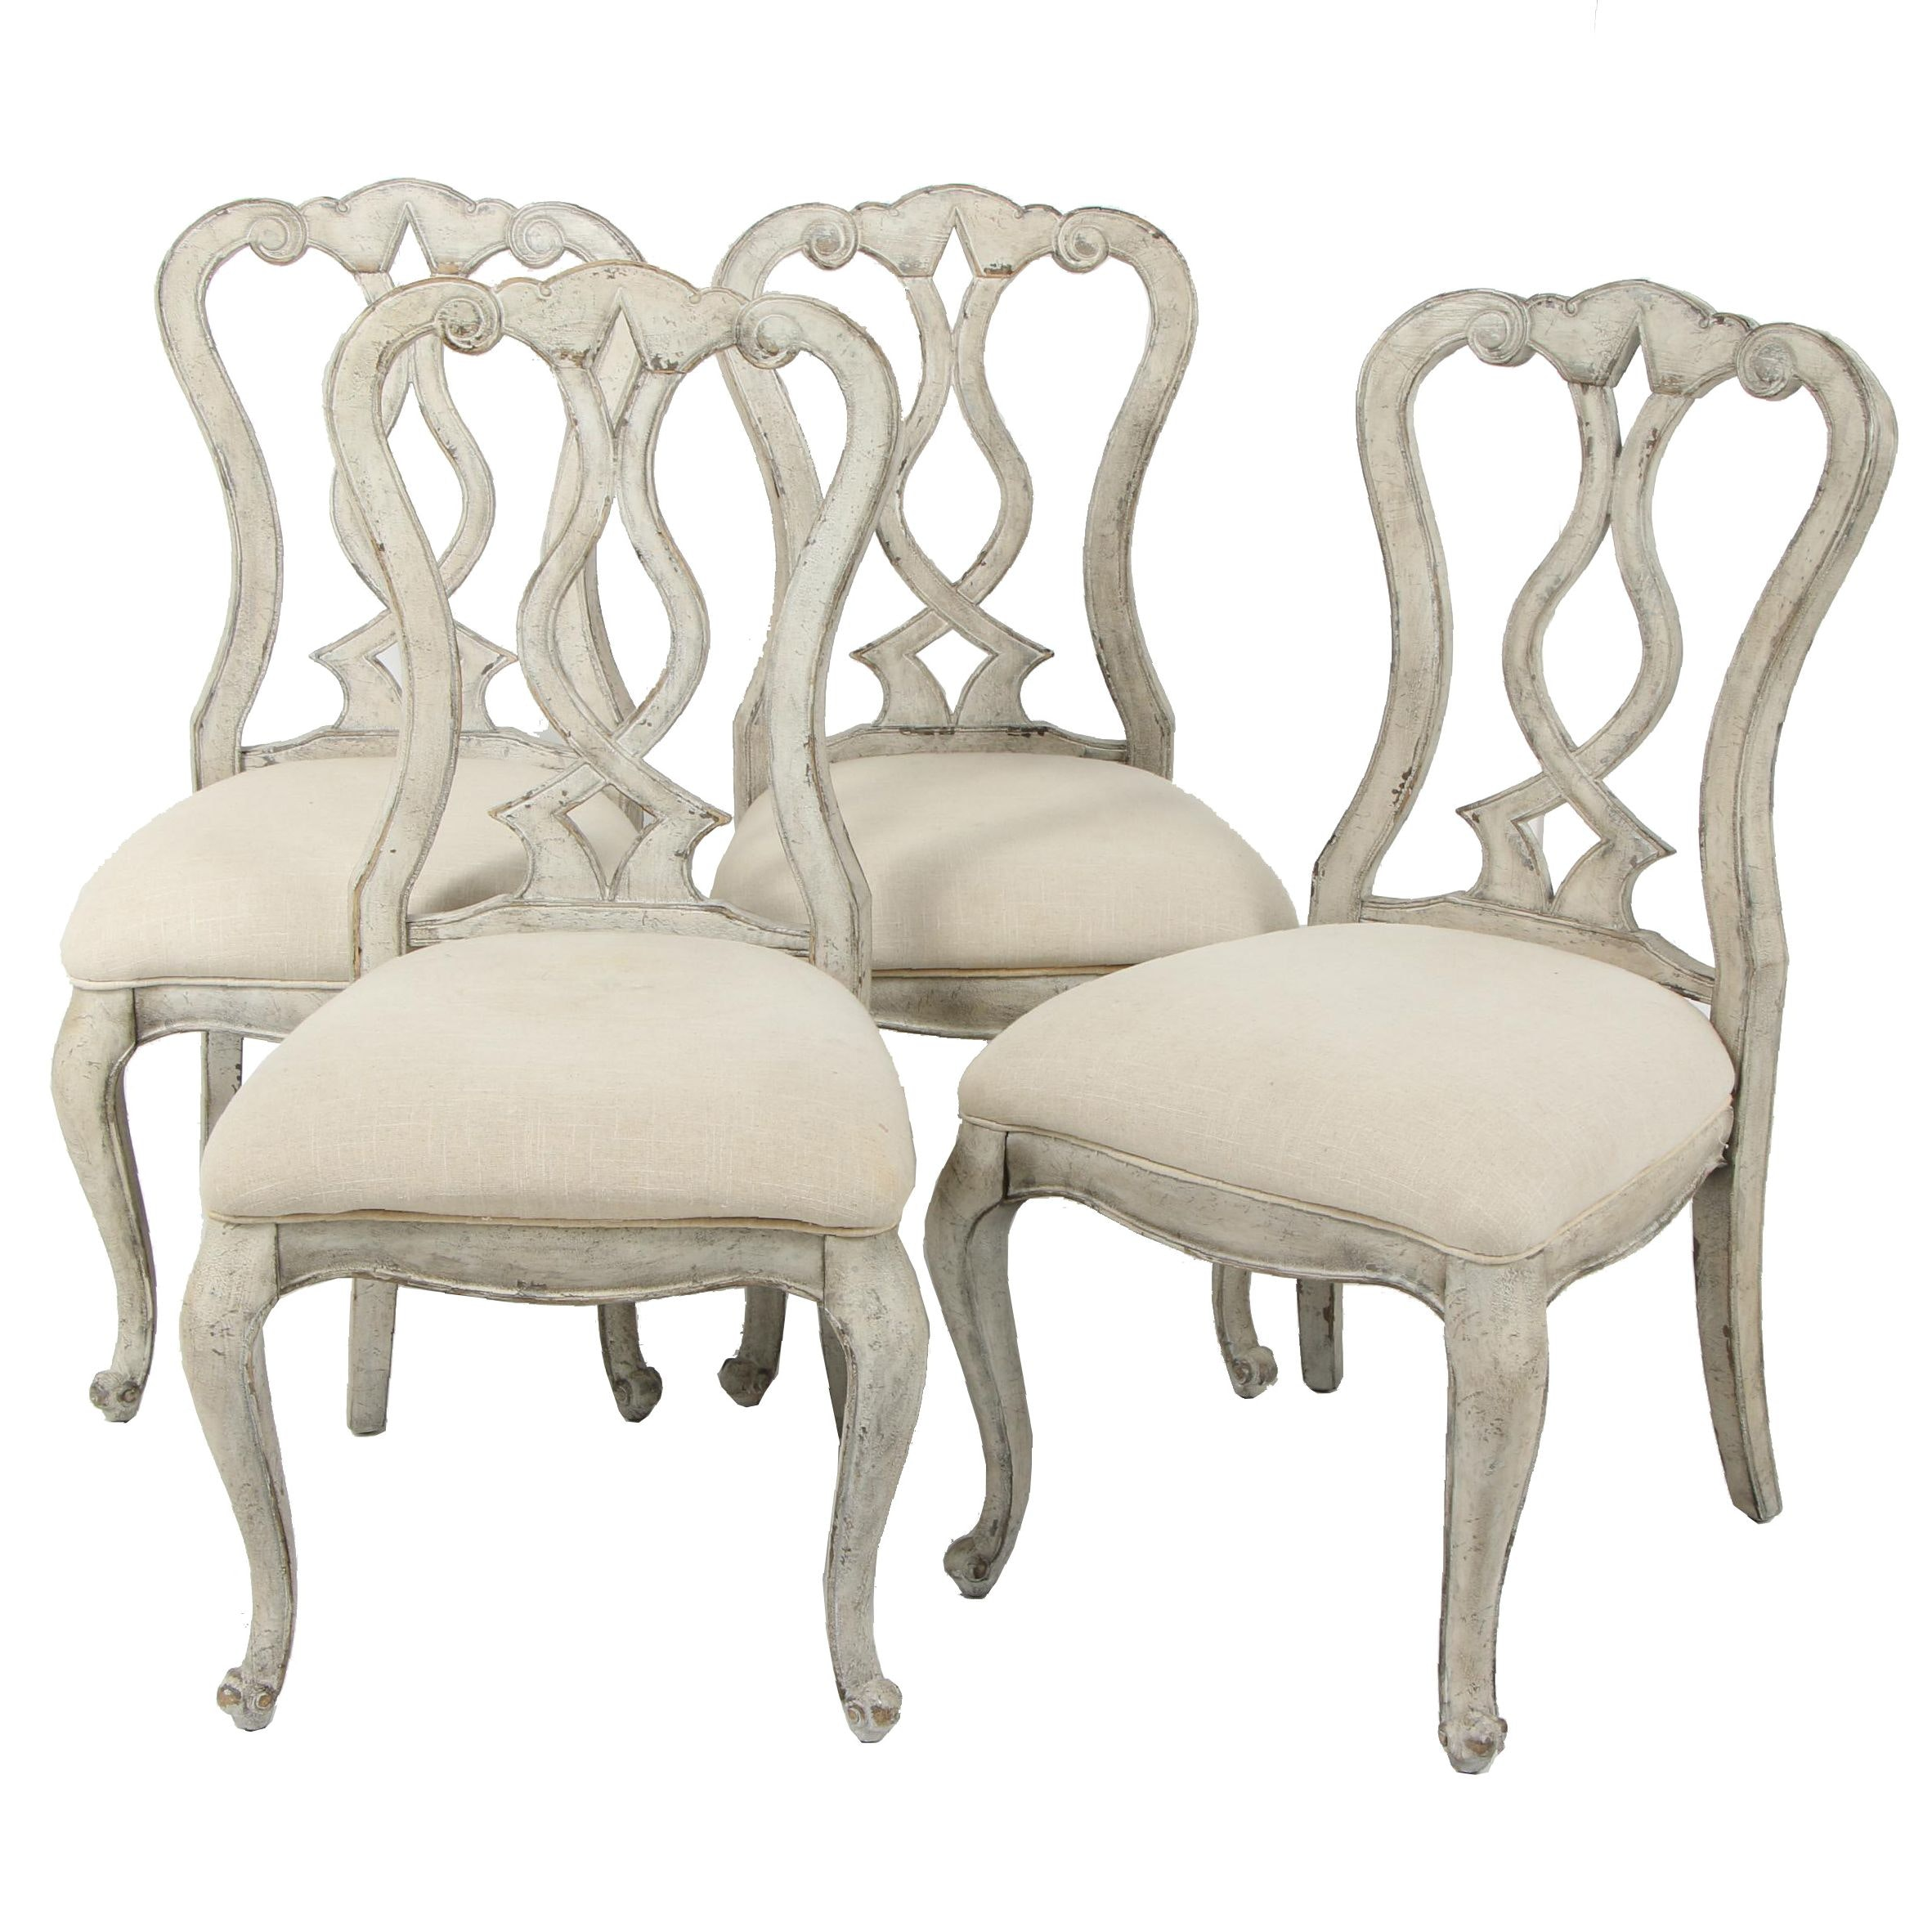 Contemporary Hooker Distressed Wooden Dining Chairs